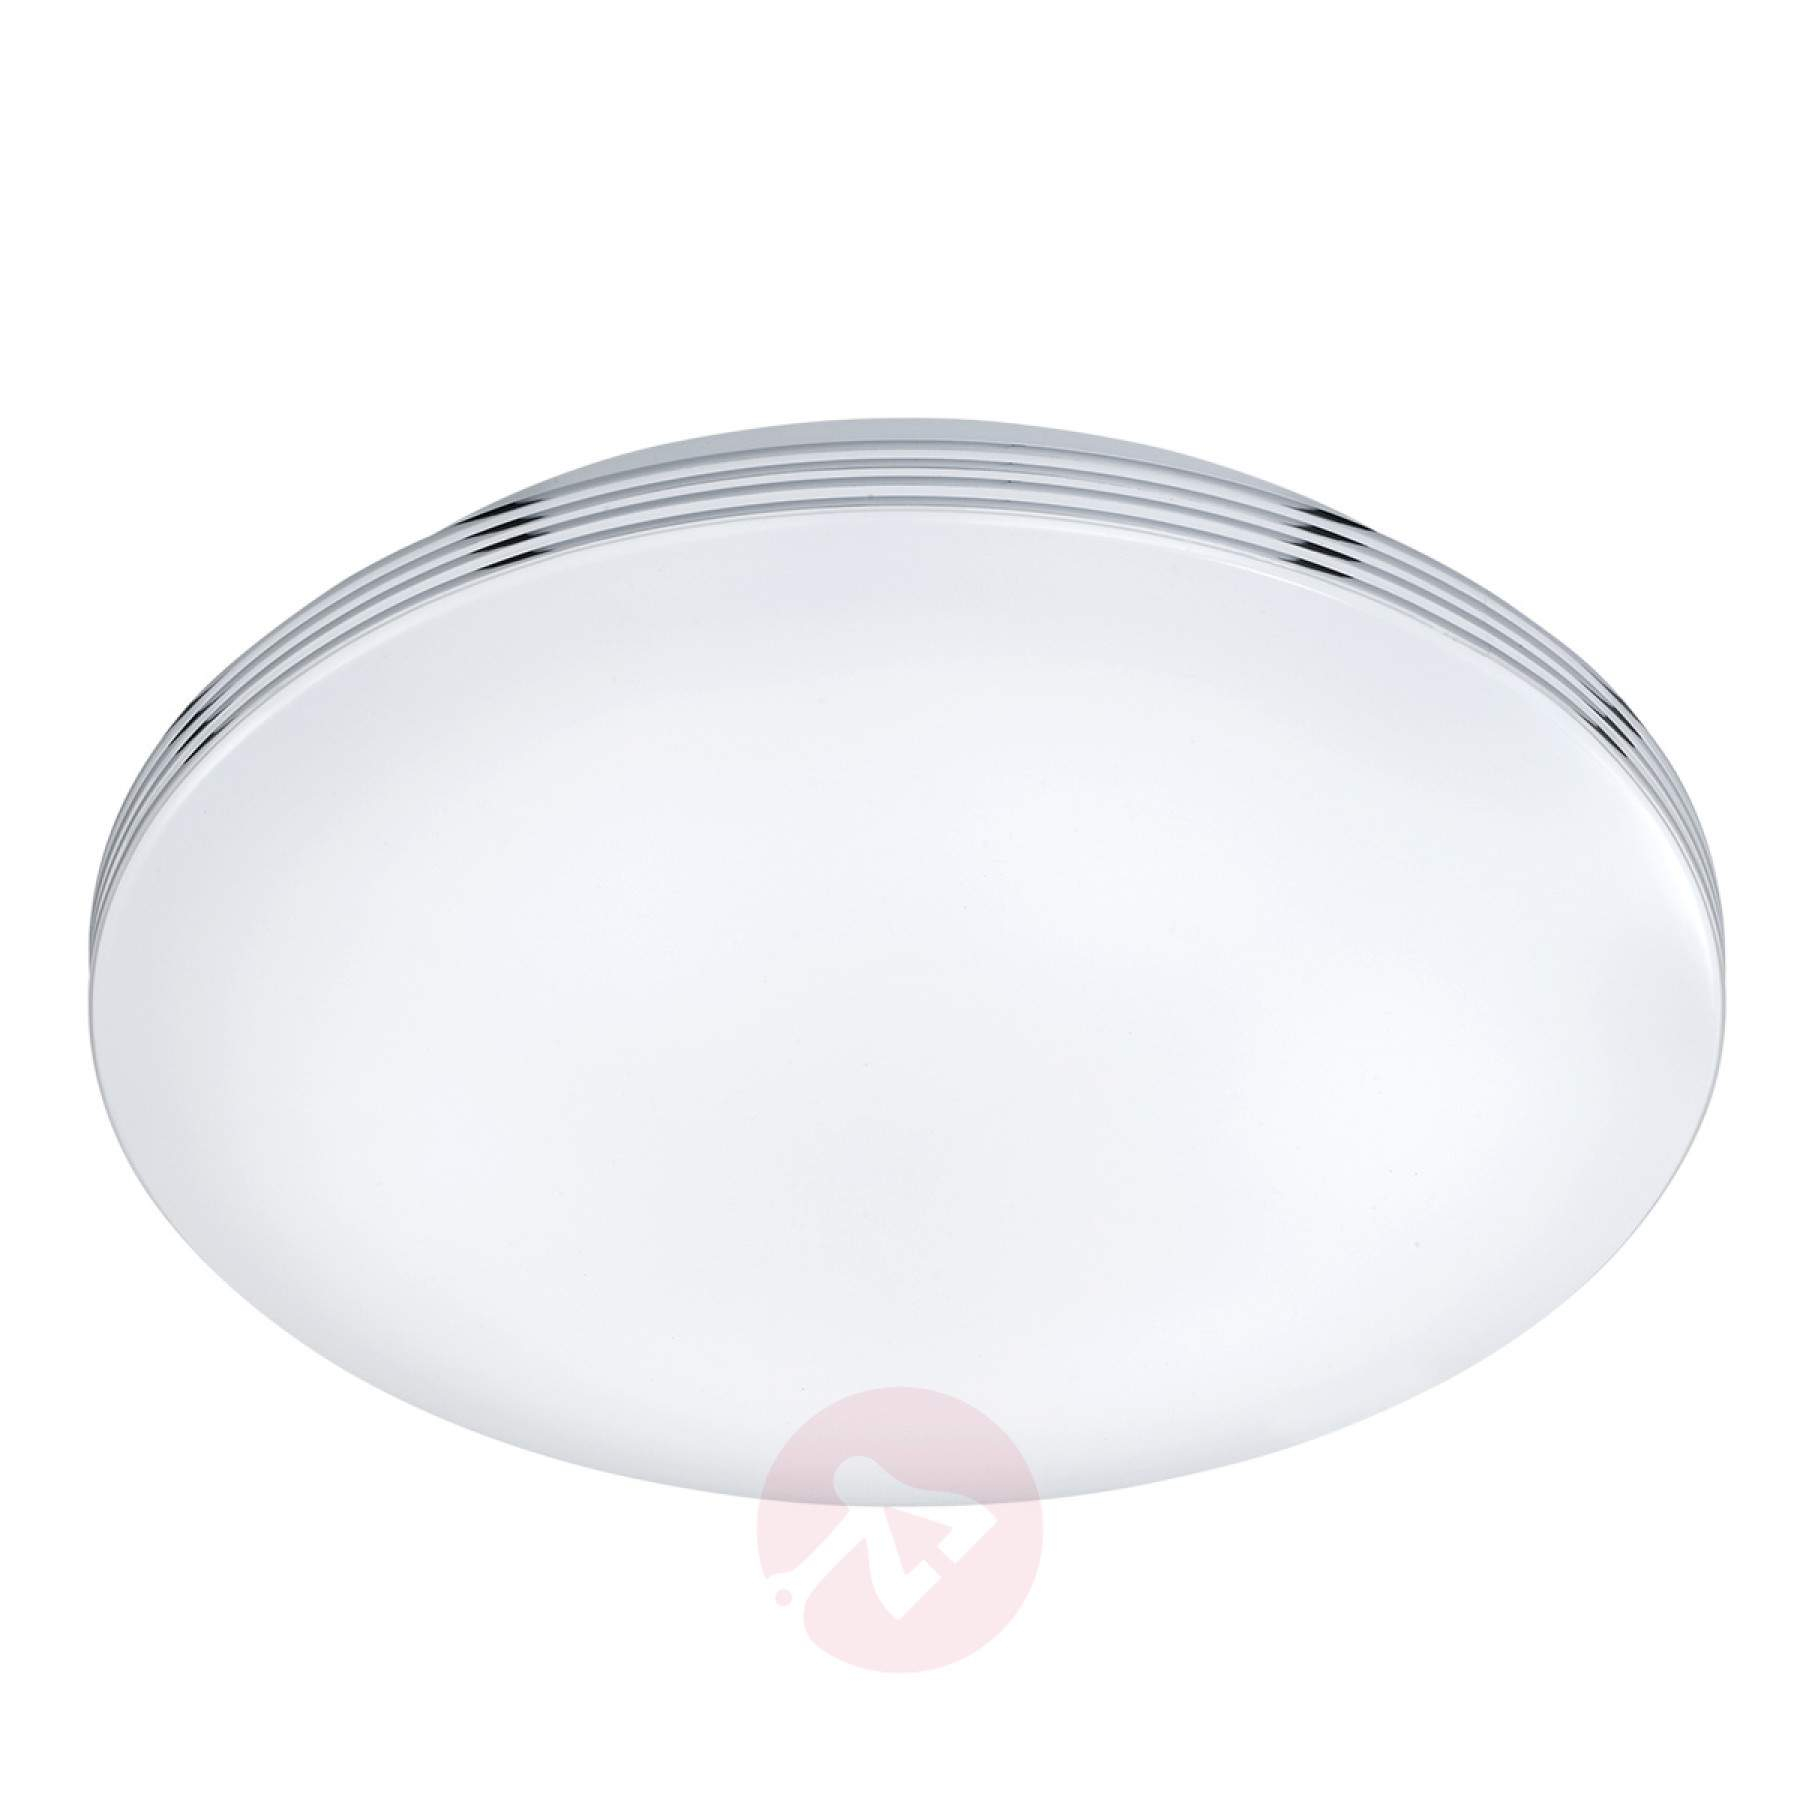 Dimmable Apart Led Bathroom Ceiling Light with regard to size 1800 X 1800